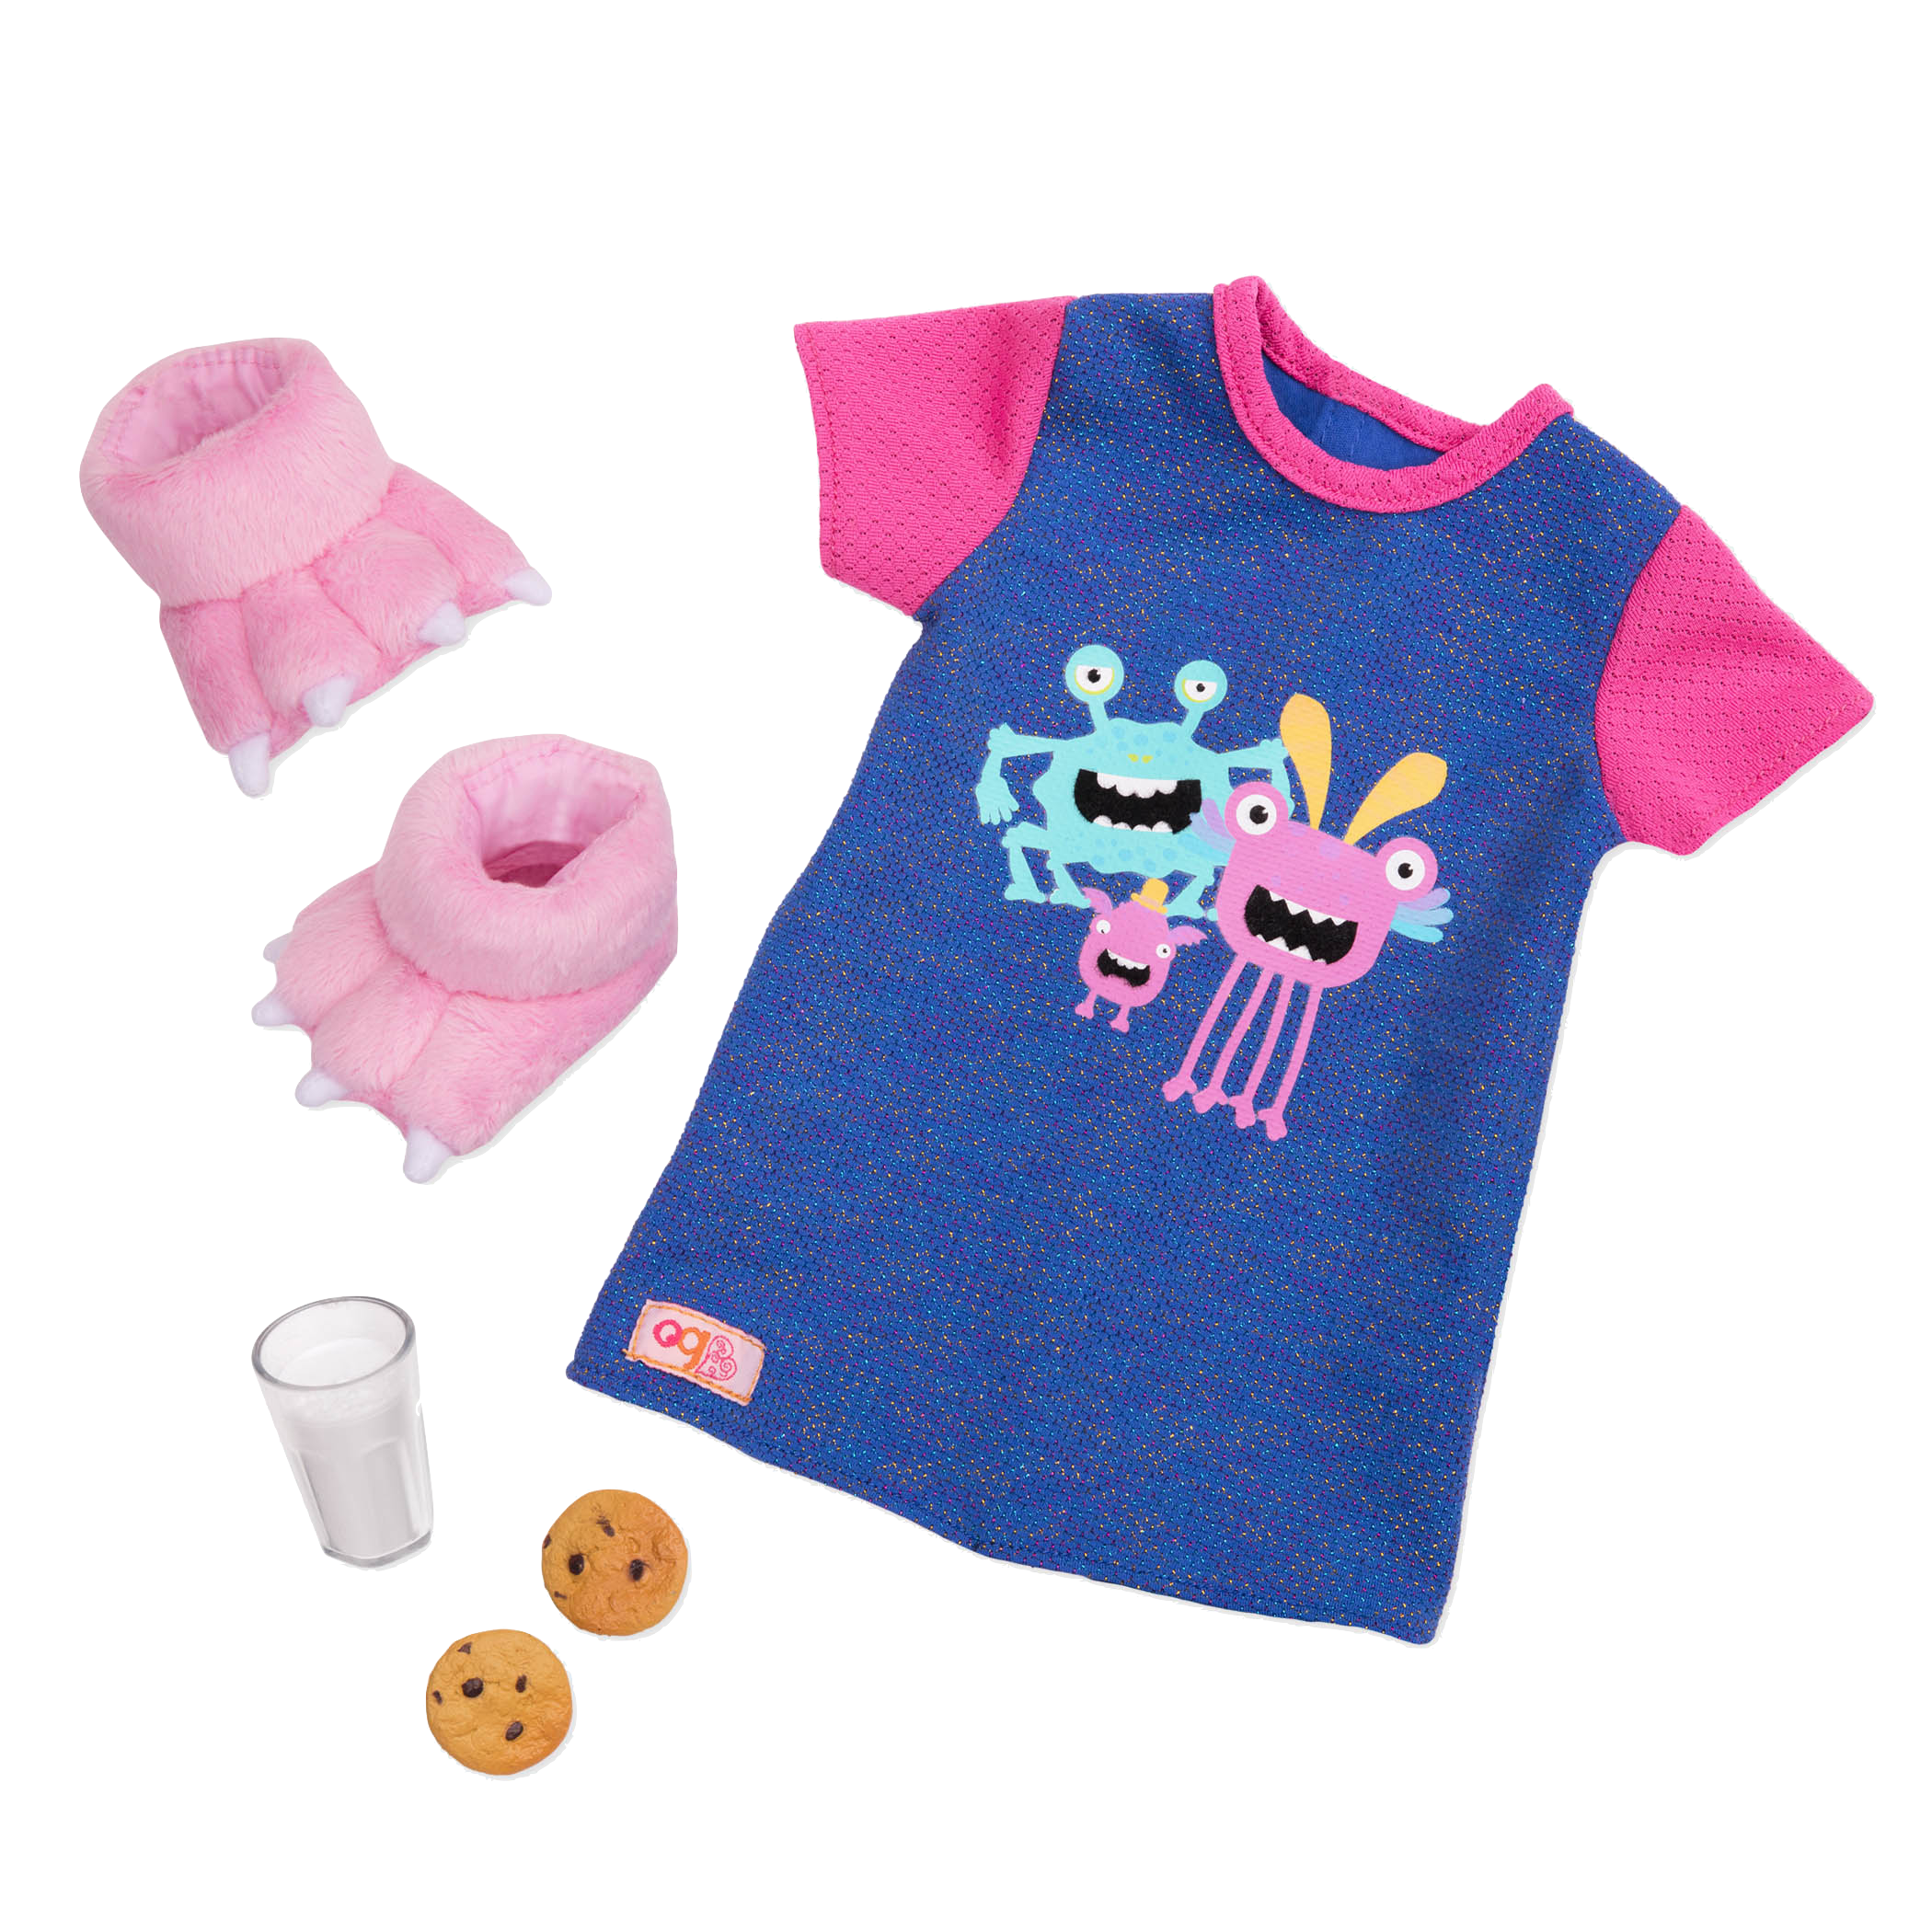 Snuggle Monster Pajama Outfit for 18-inch Dolls